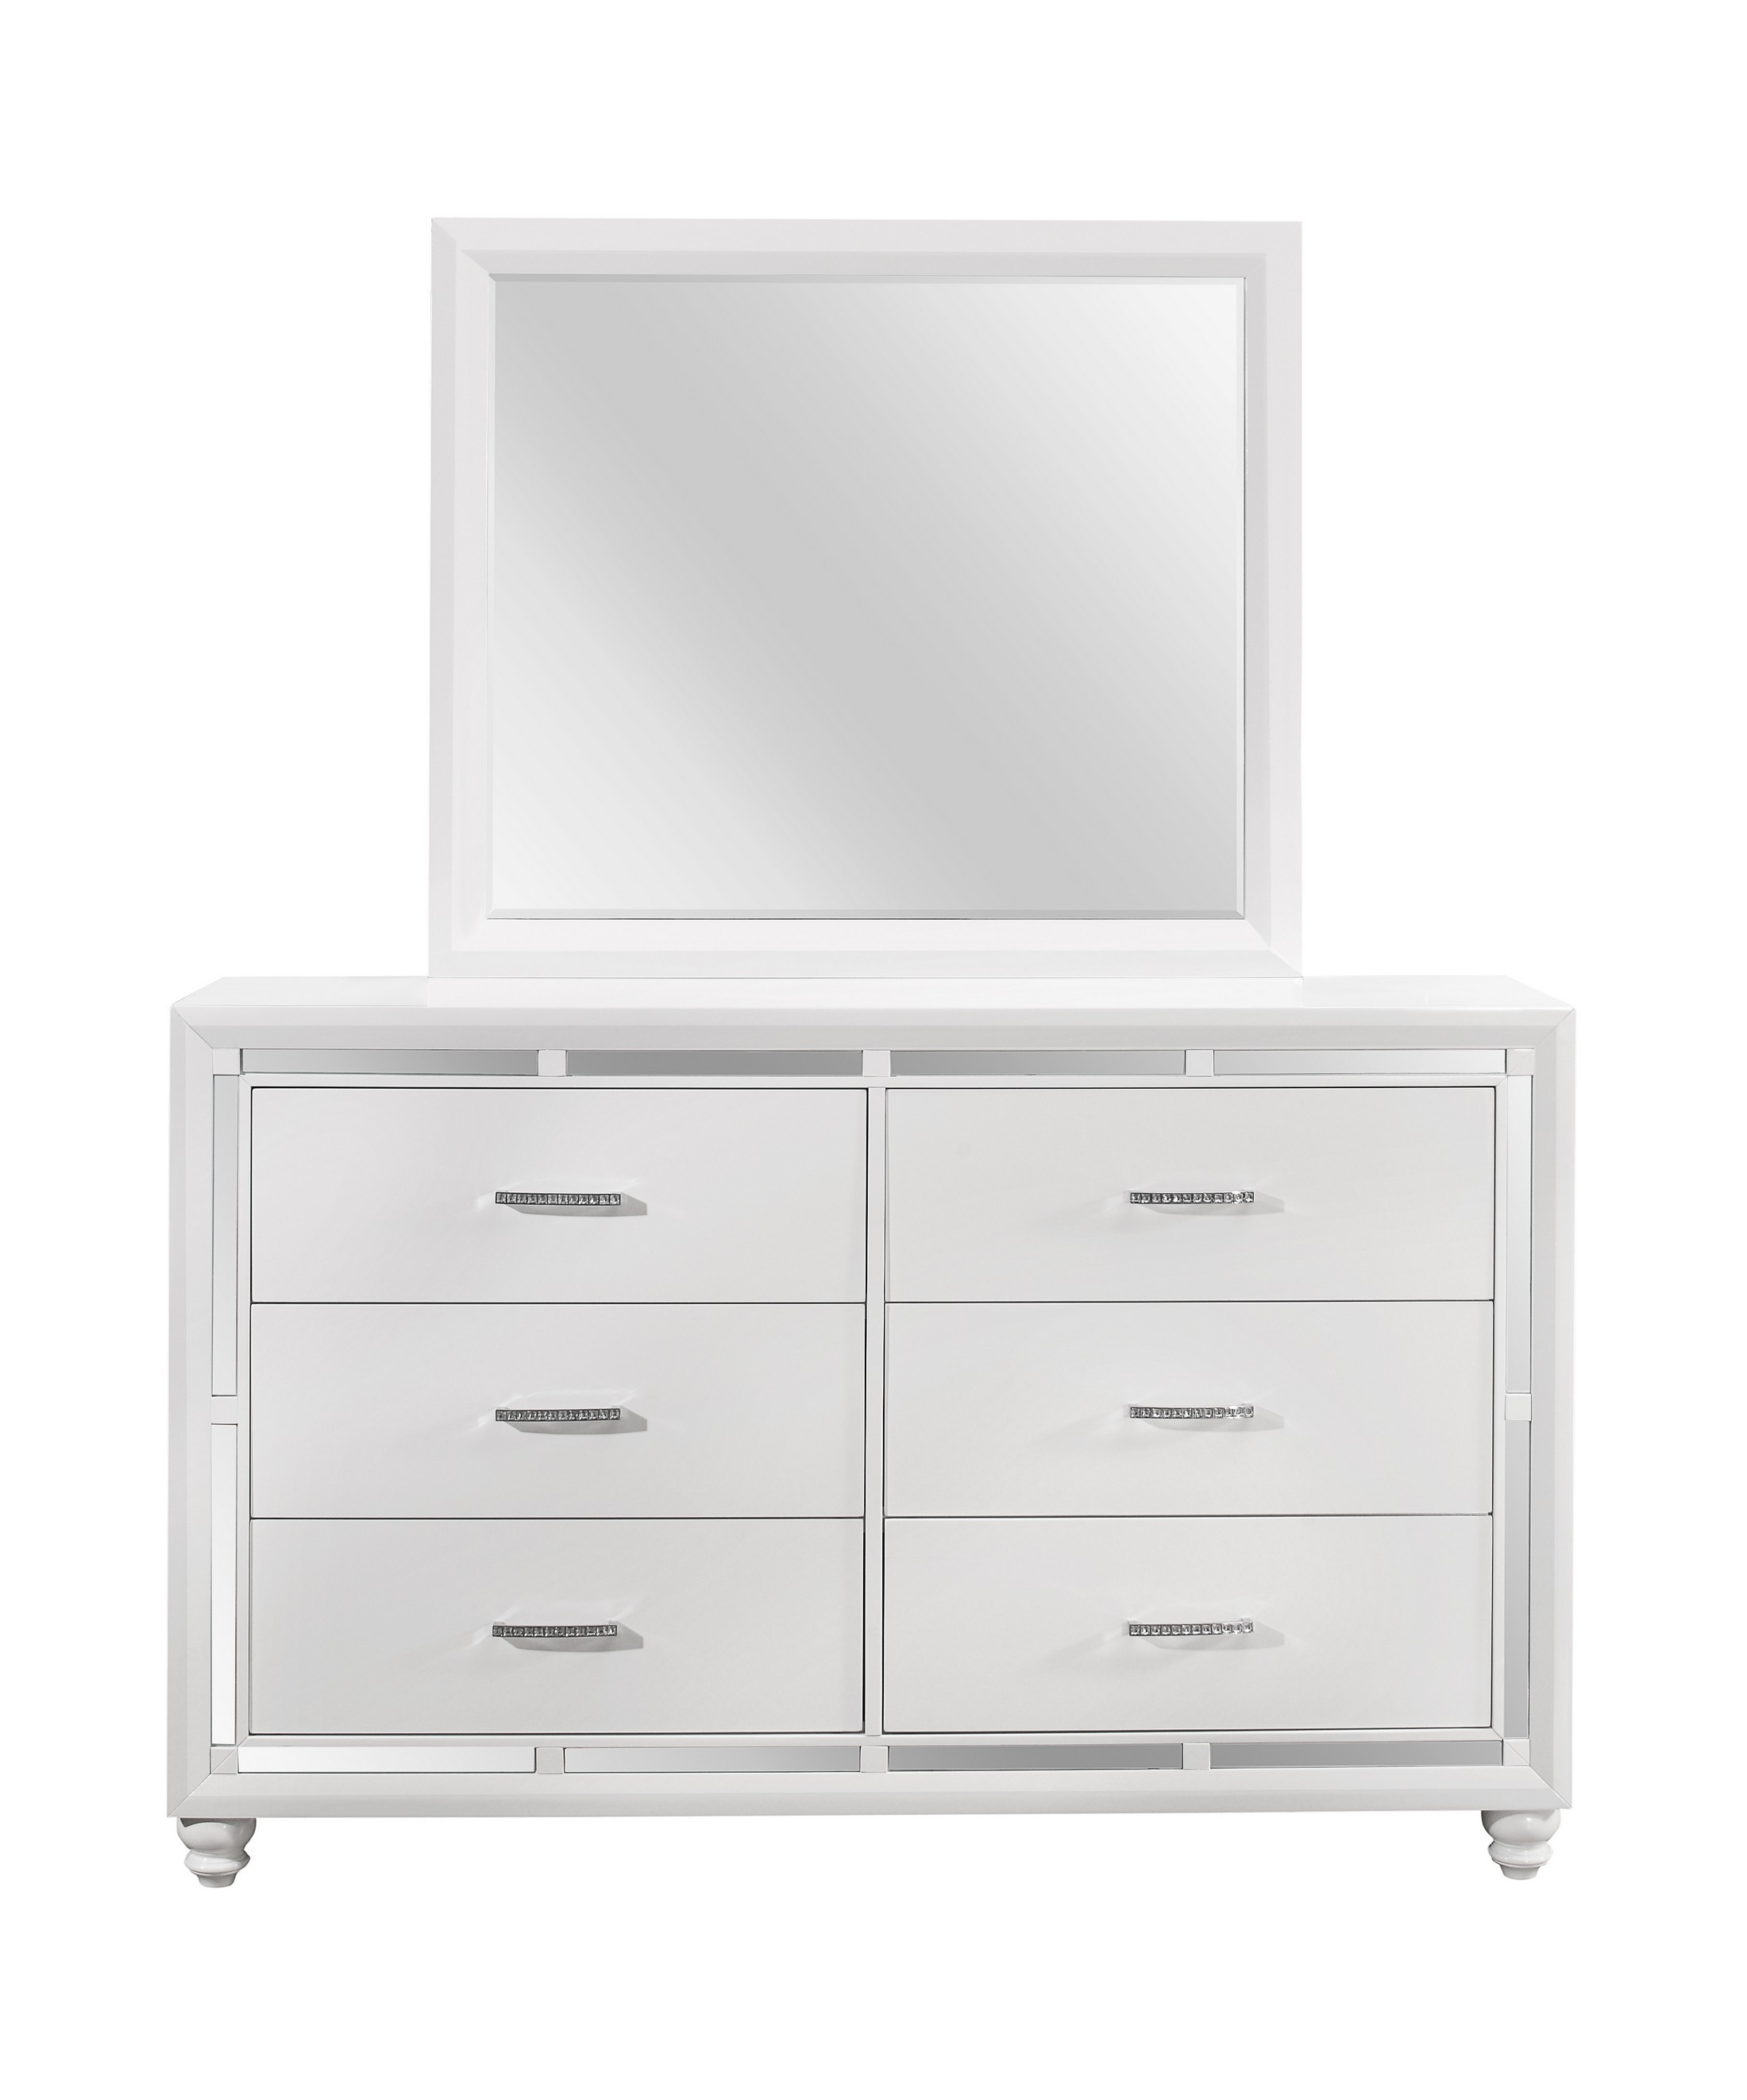 mackenzie dresser global furniture usa dressers comfyco dre mirrored accent table open new window matching living room dining decorative accents round marble coffee target mid